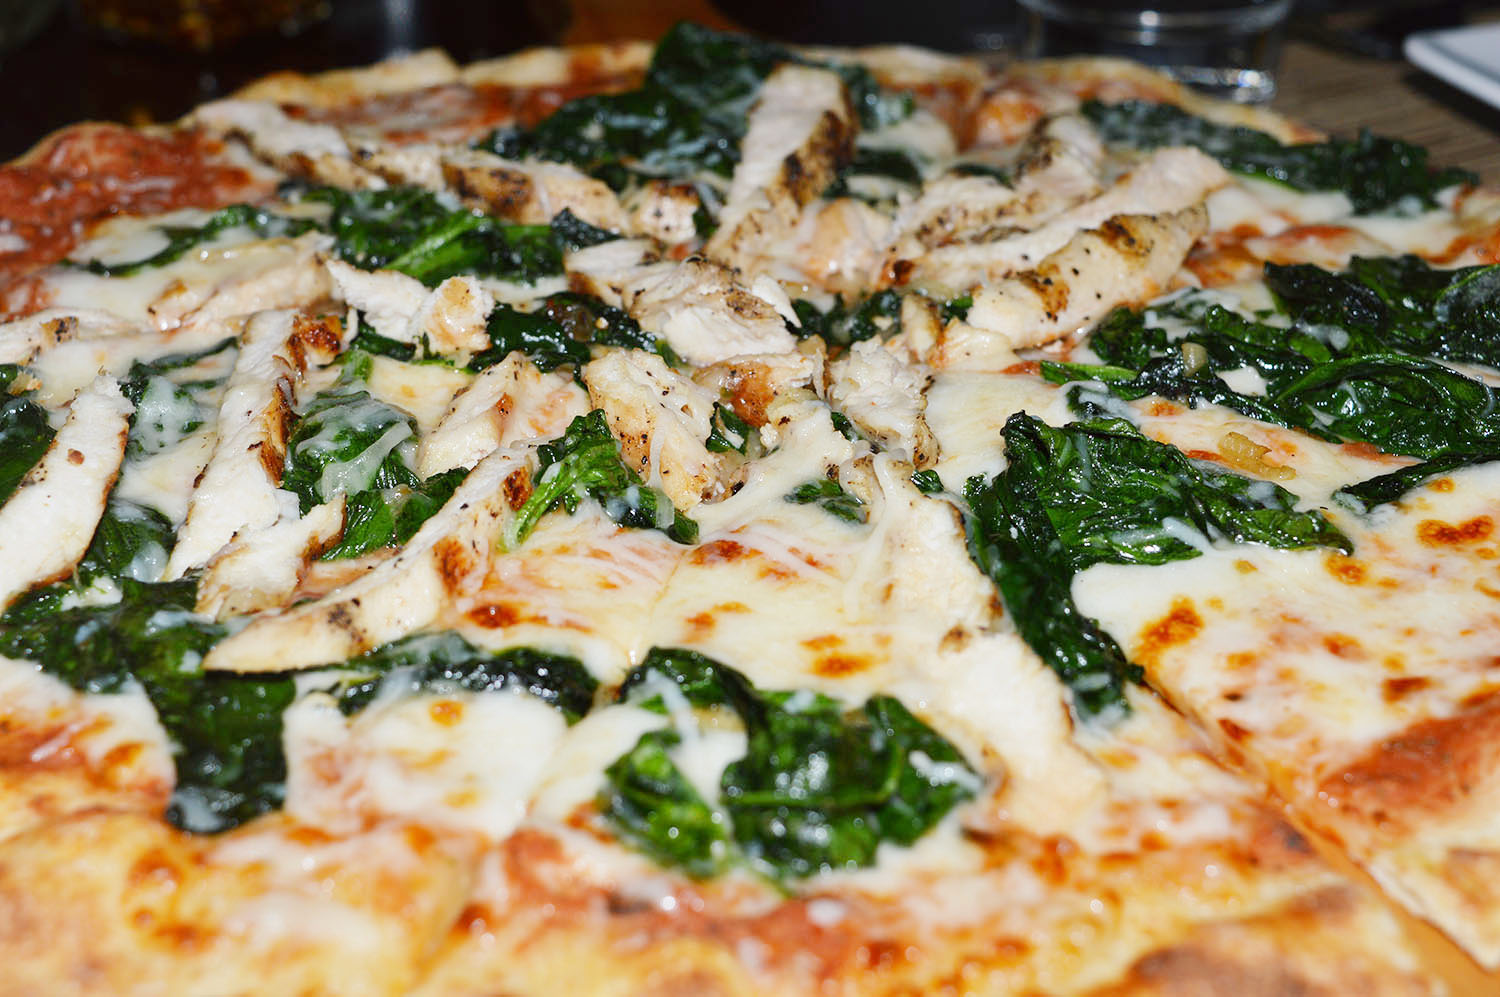 Chicken & Spinach Pizza - Photo Credit: thespotist.com